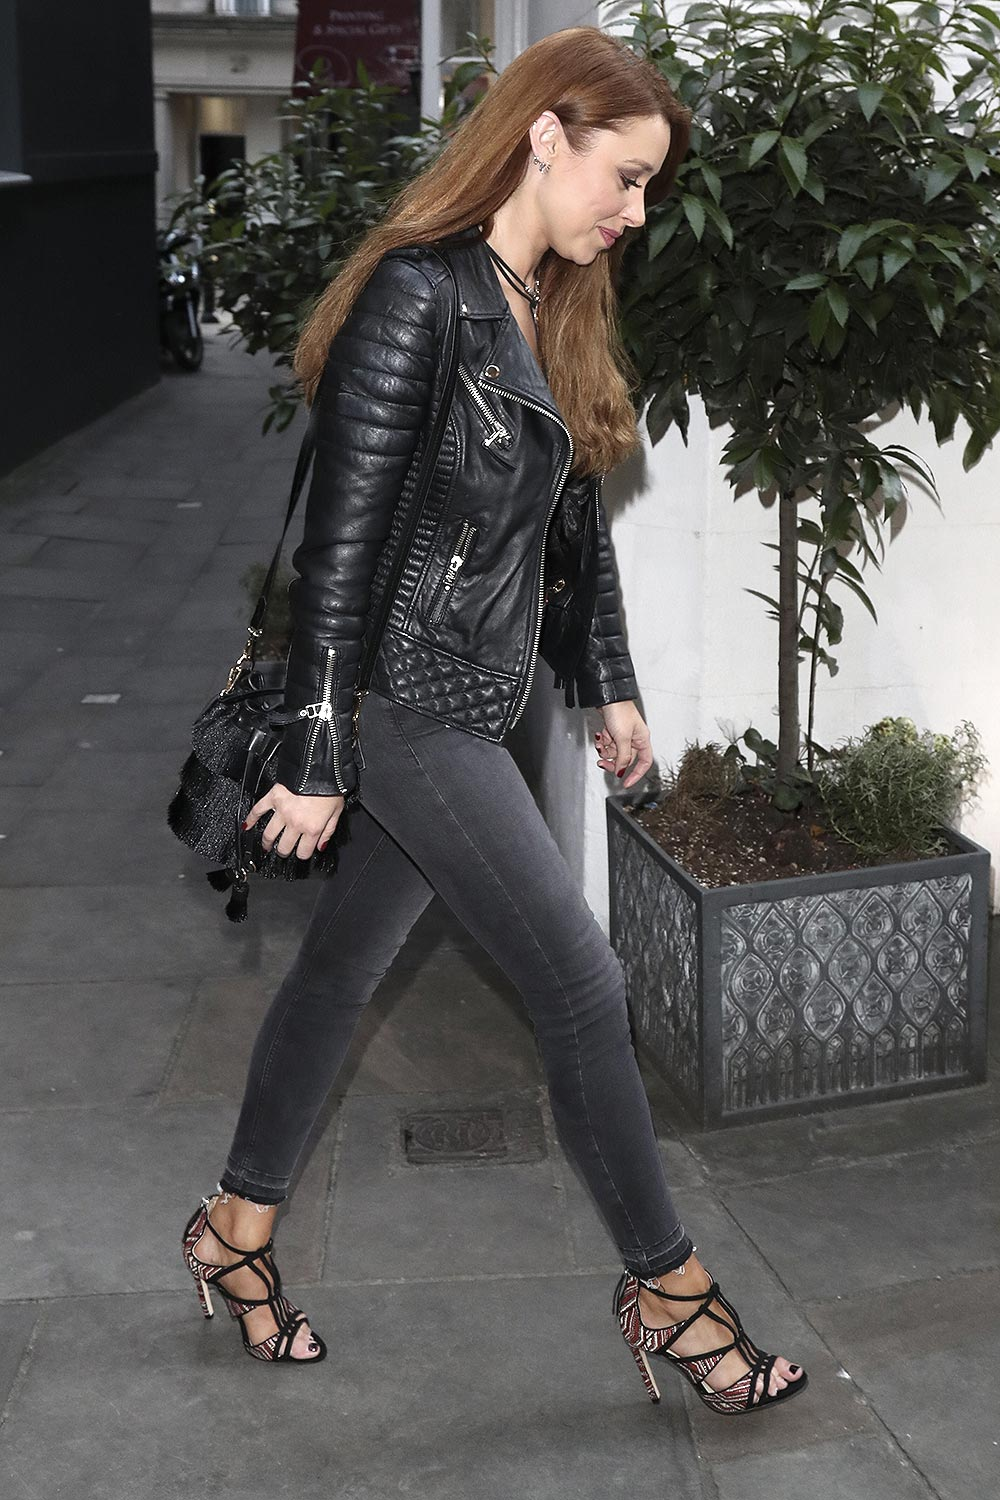 Una Healy seen at Mews of Mayfair